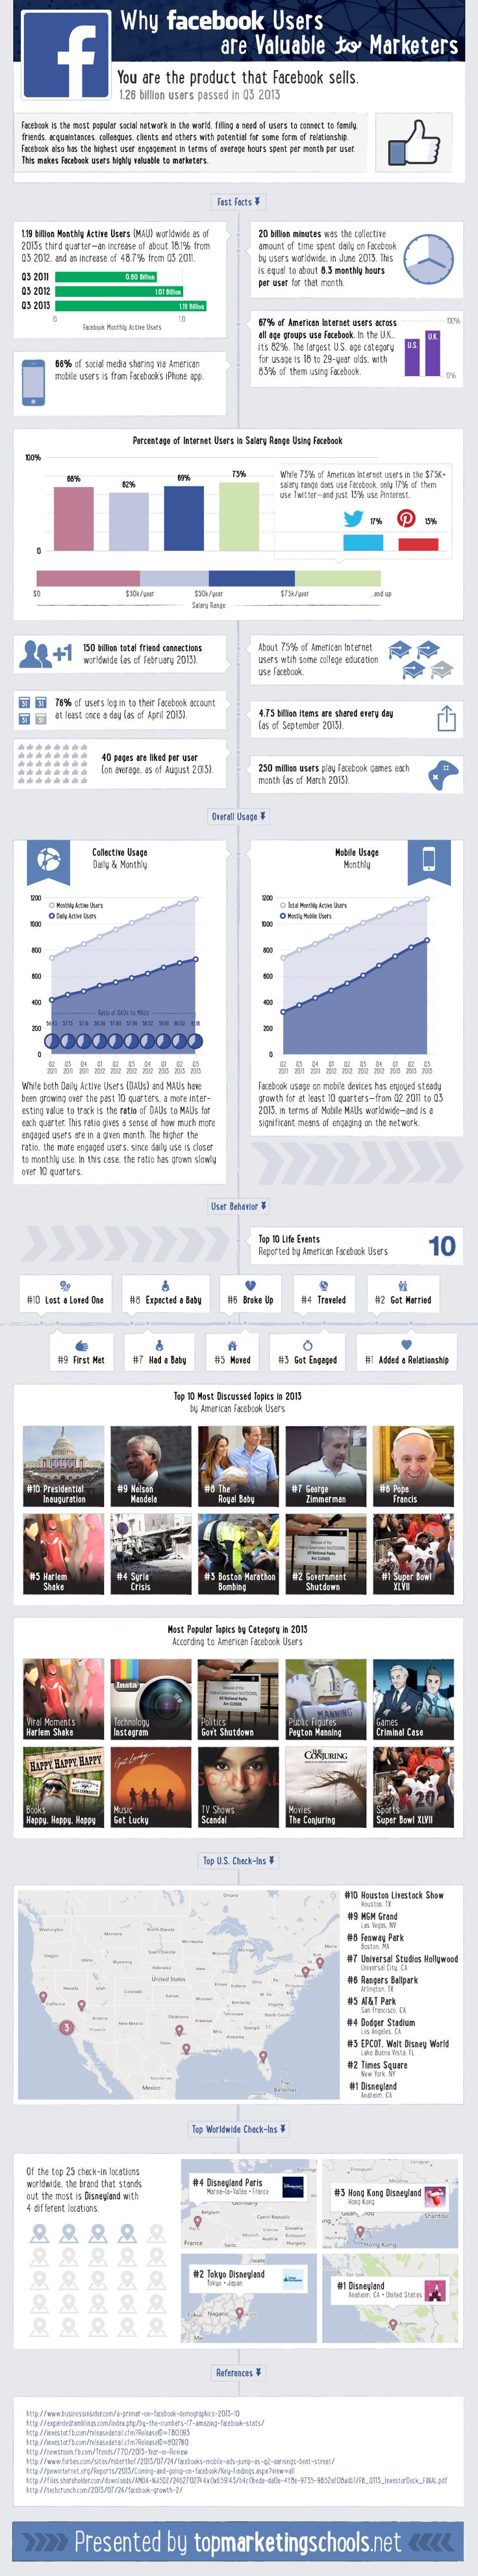 Facebook Facts you Need to Know in 2014 - Jeffbullas's Blog